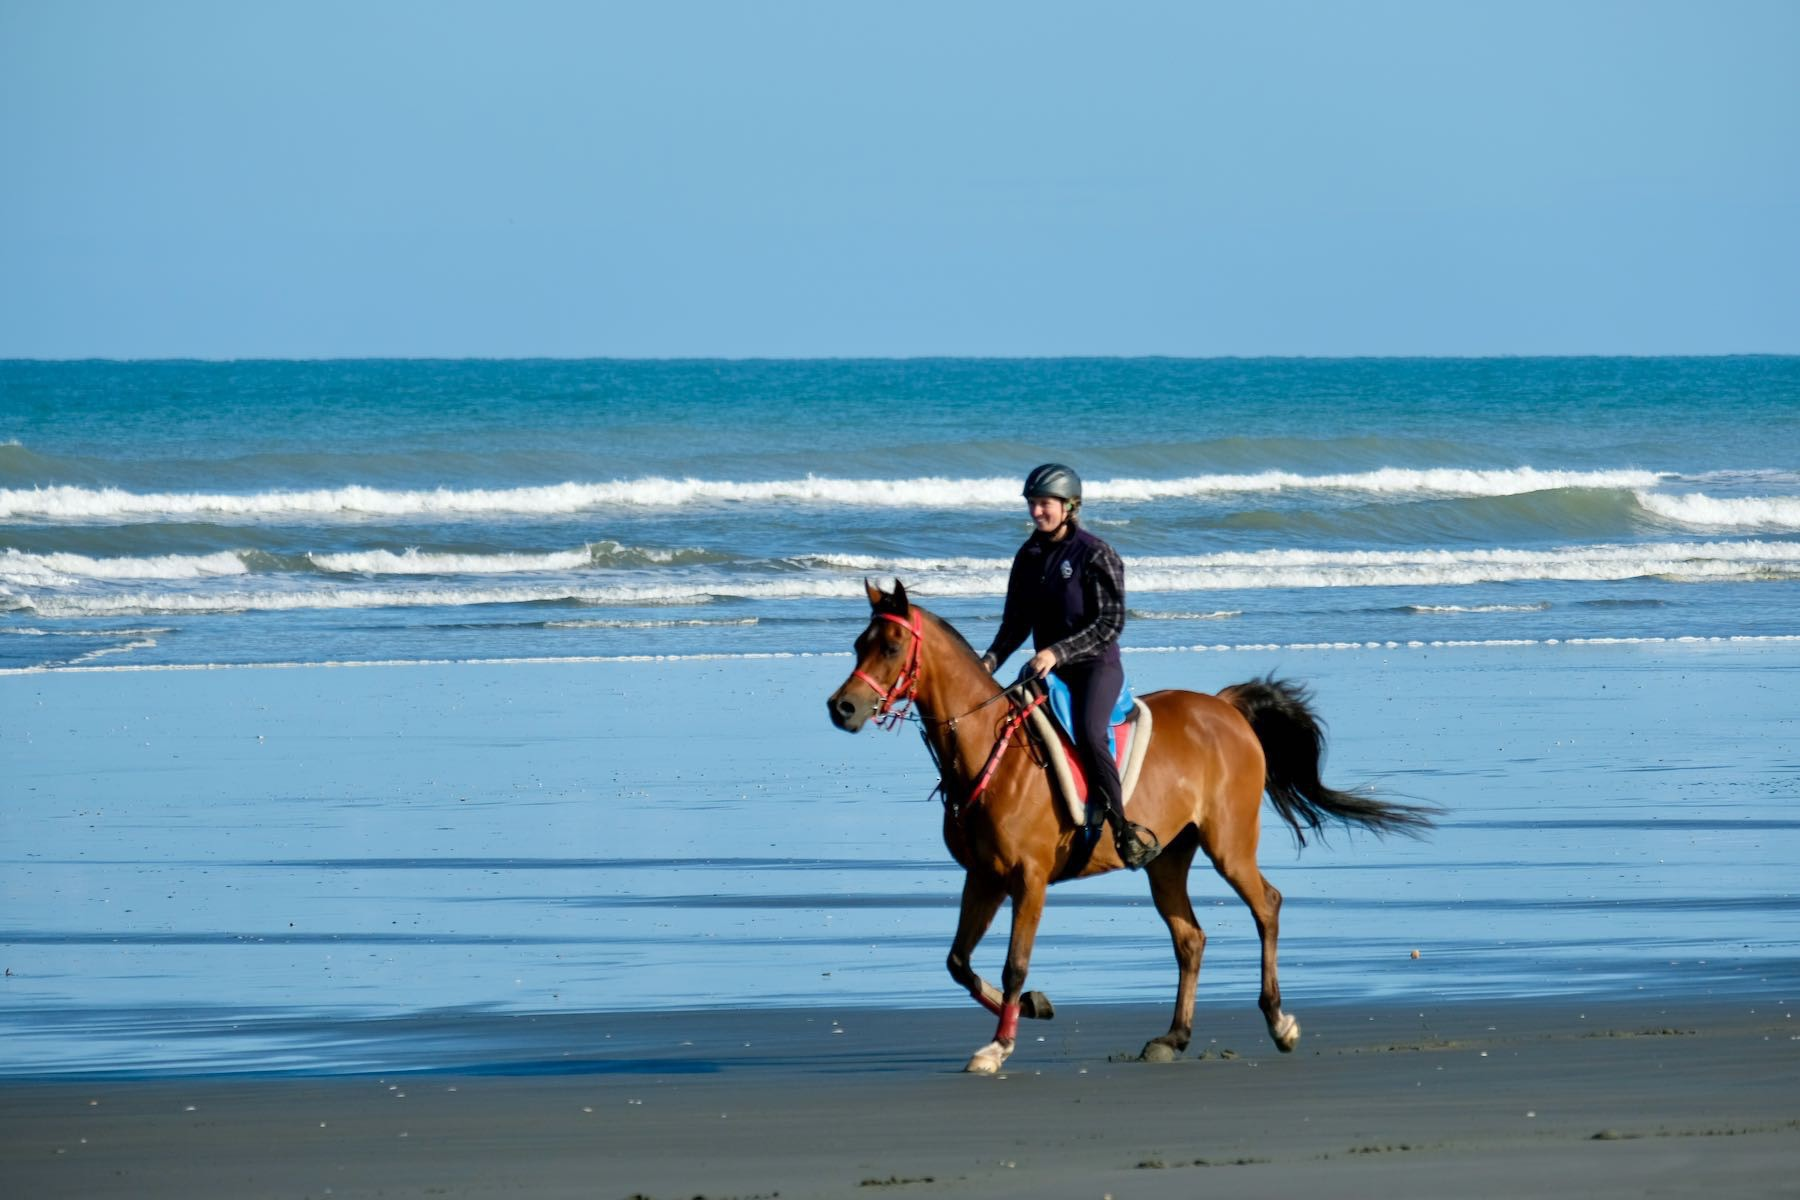 Brown Arab horse with rider on the beach by the sea.